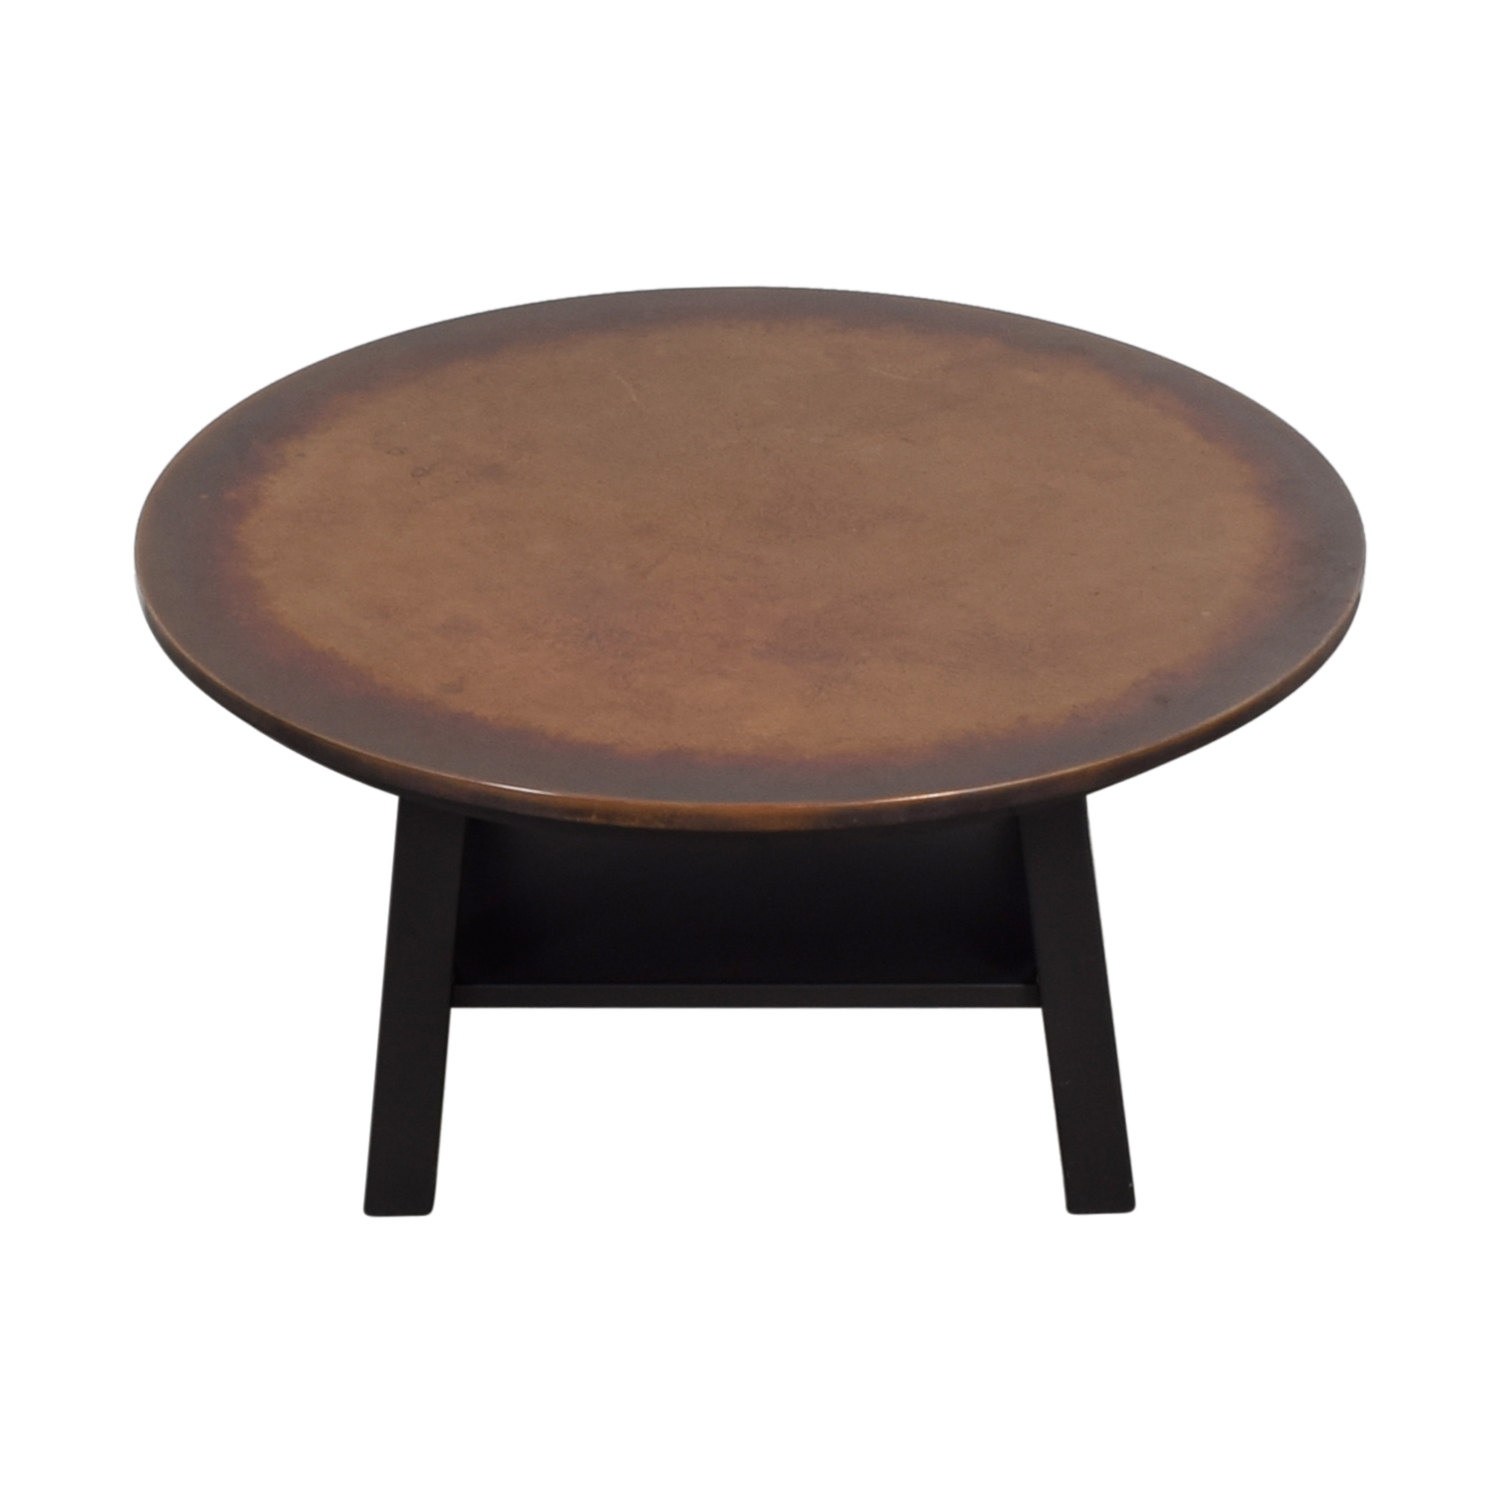 Round Copper Top Coffee Table nj